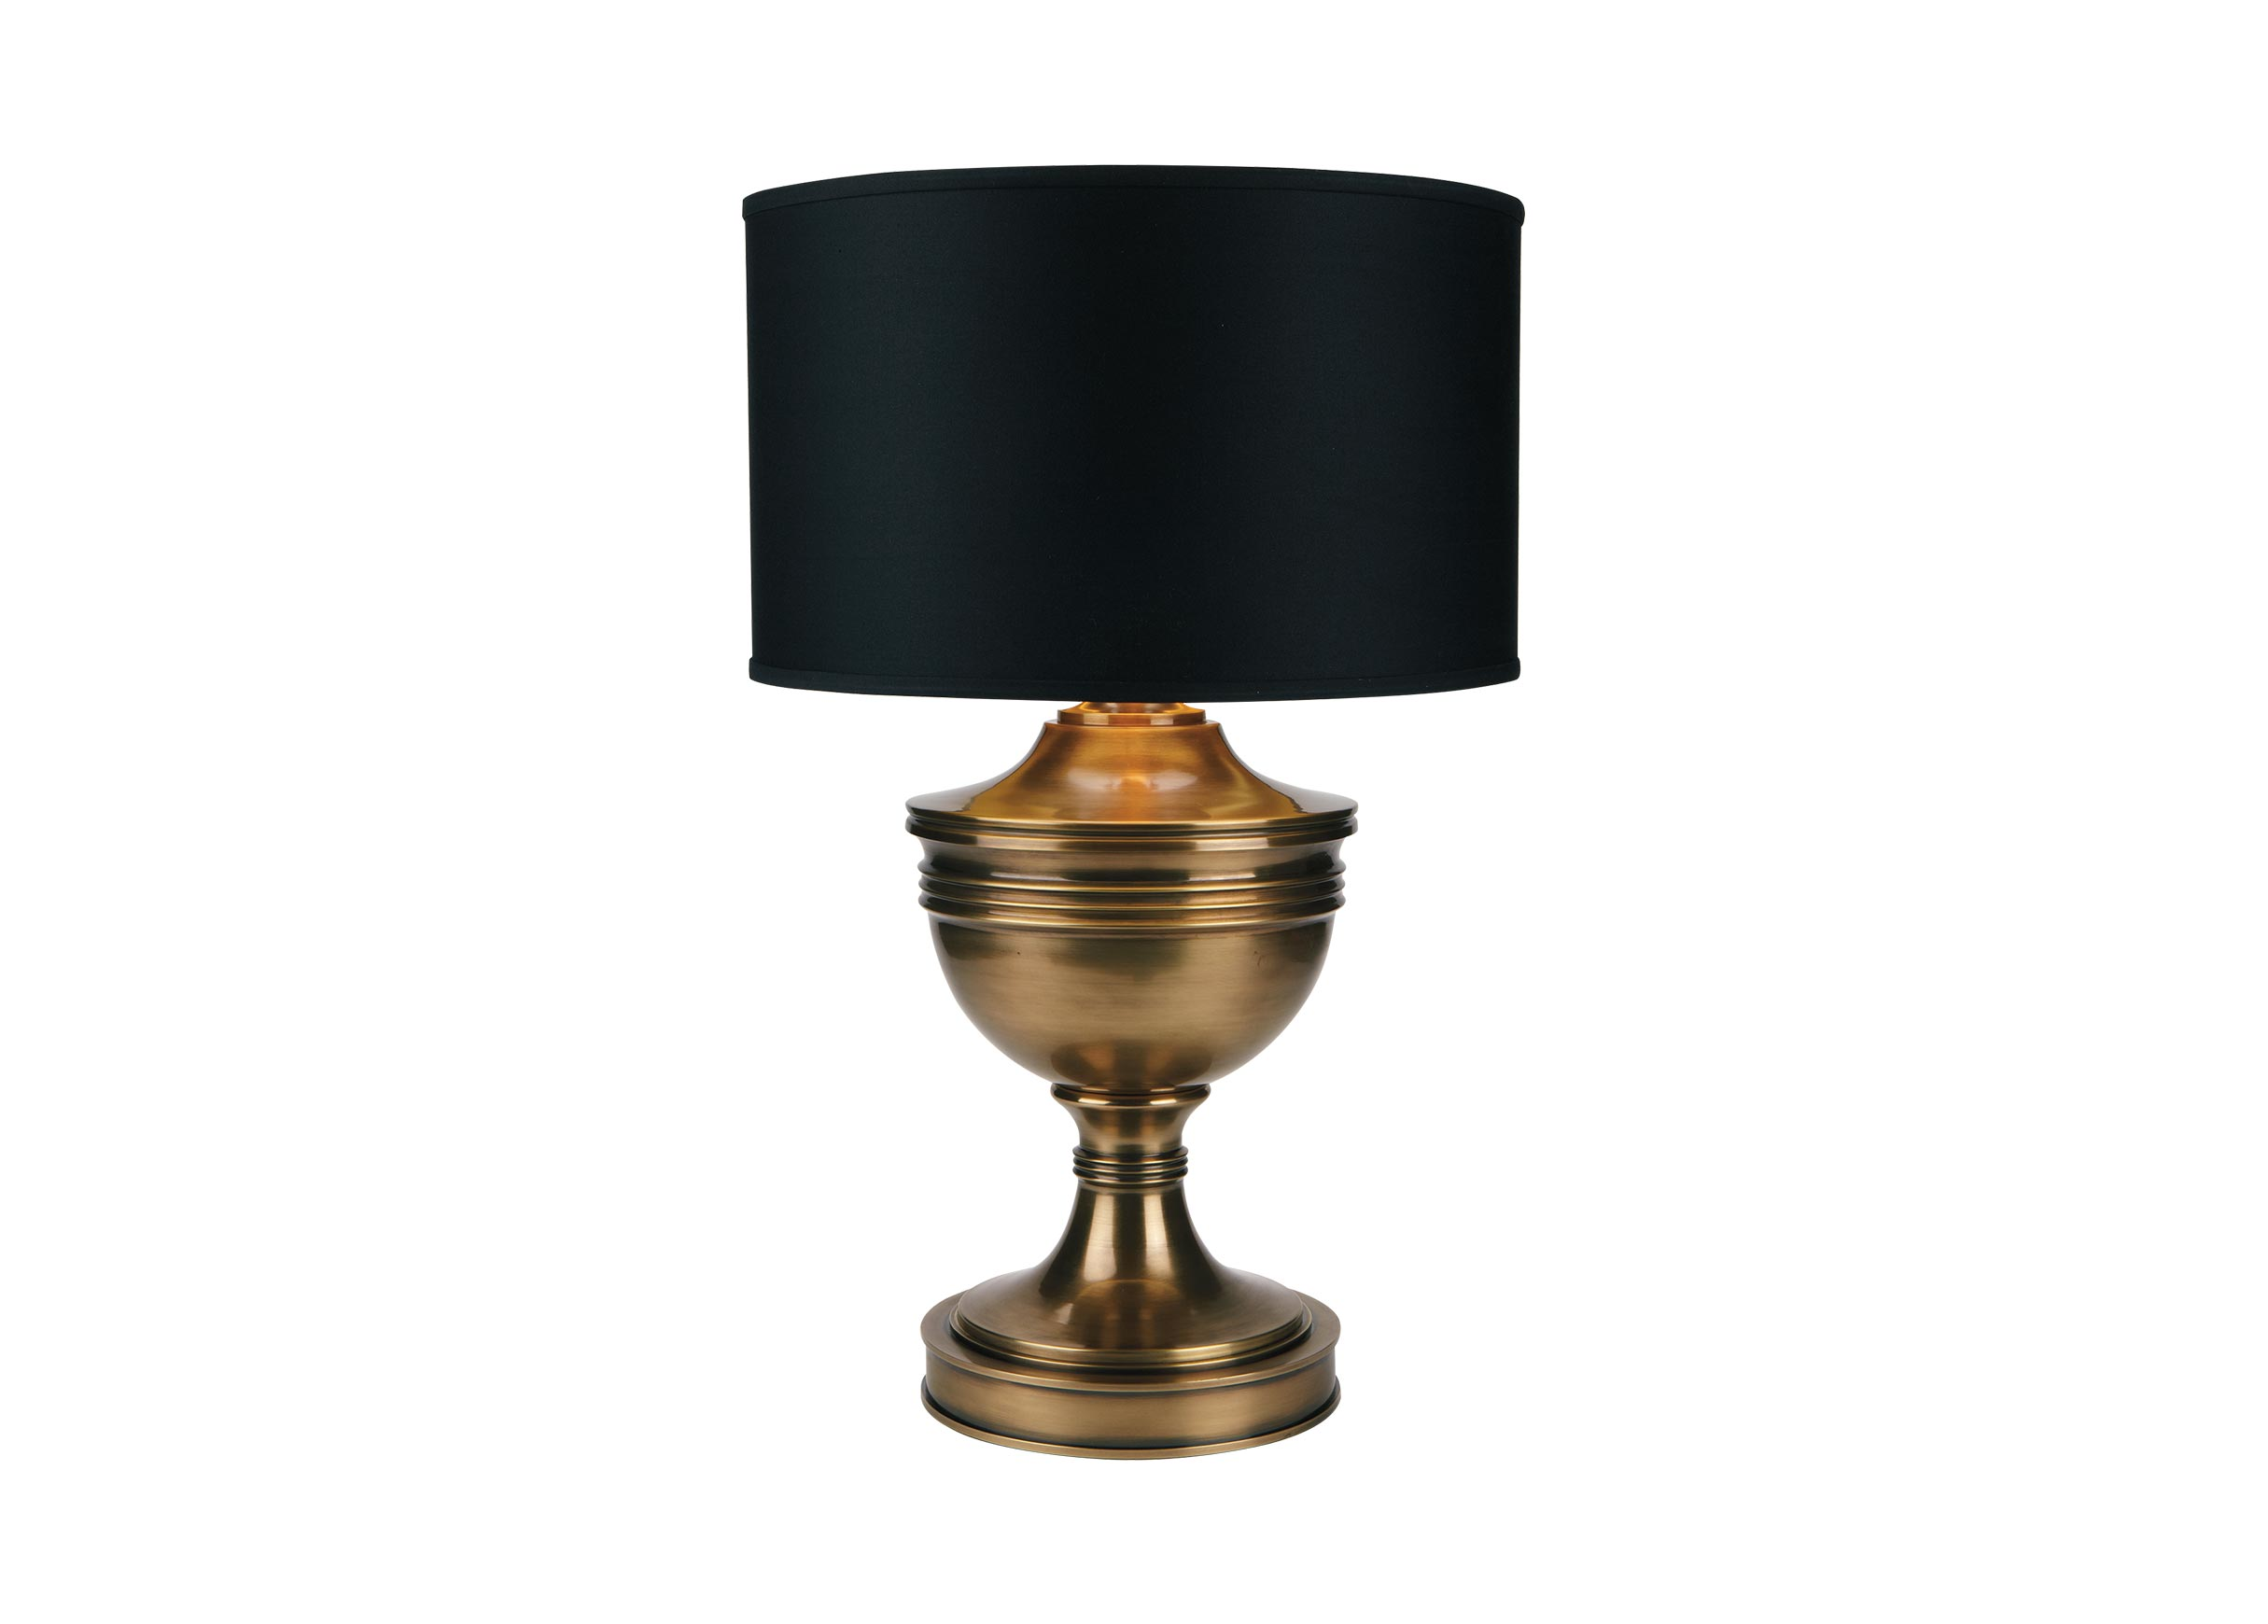 Otis large brass table lamp table lamps ethan allen otis large brass table lamp aloadofball Choice Image